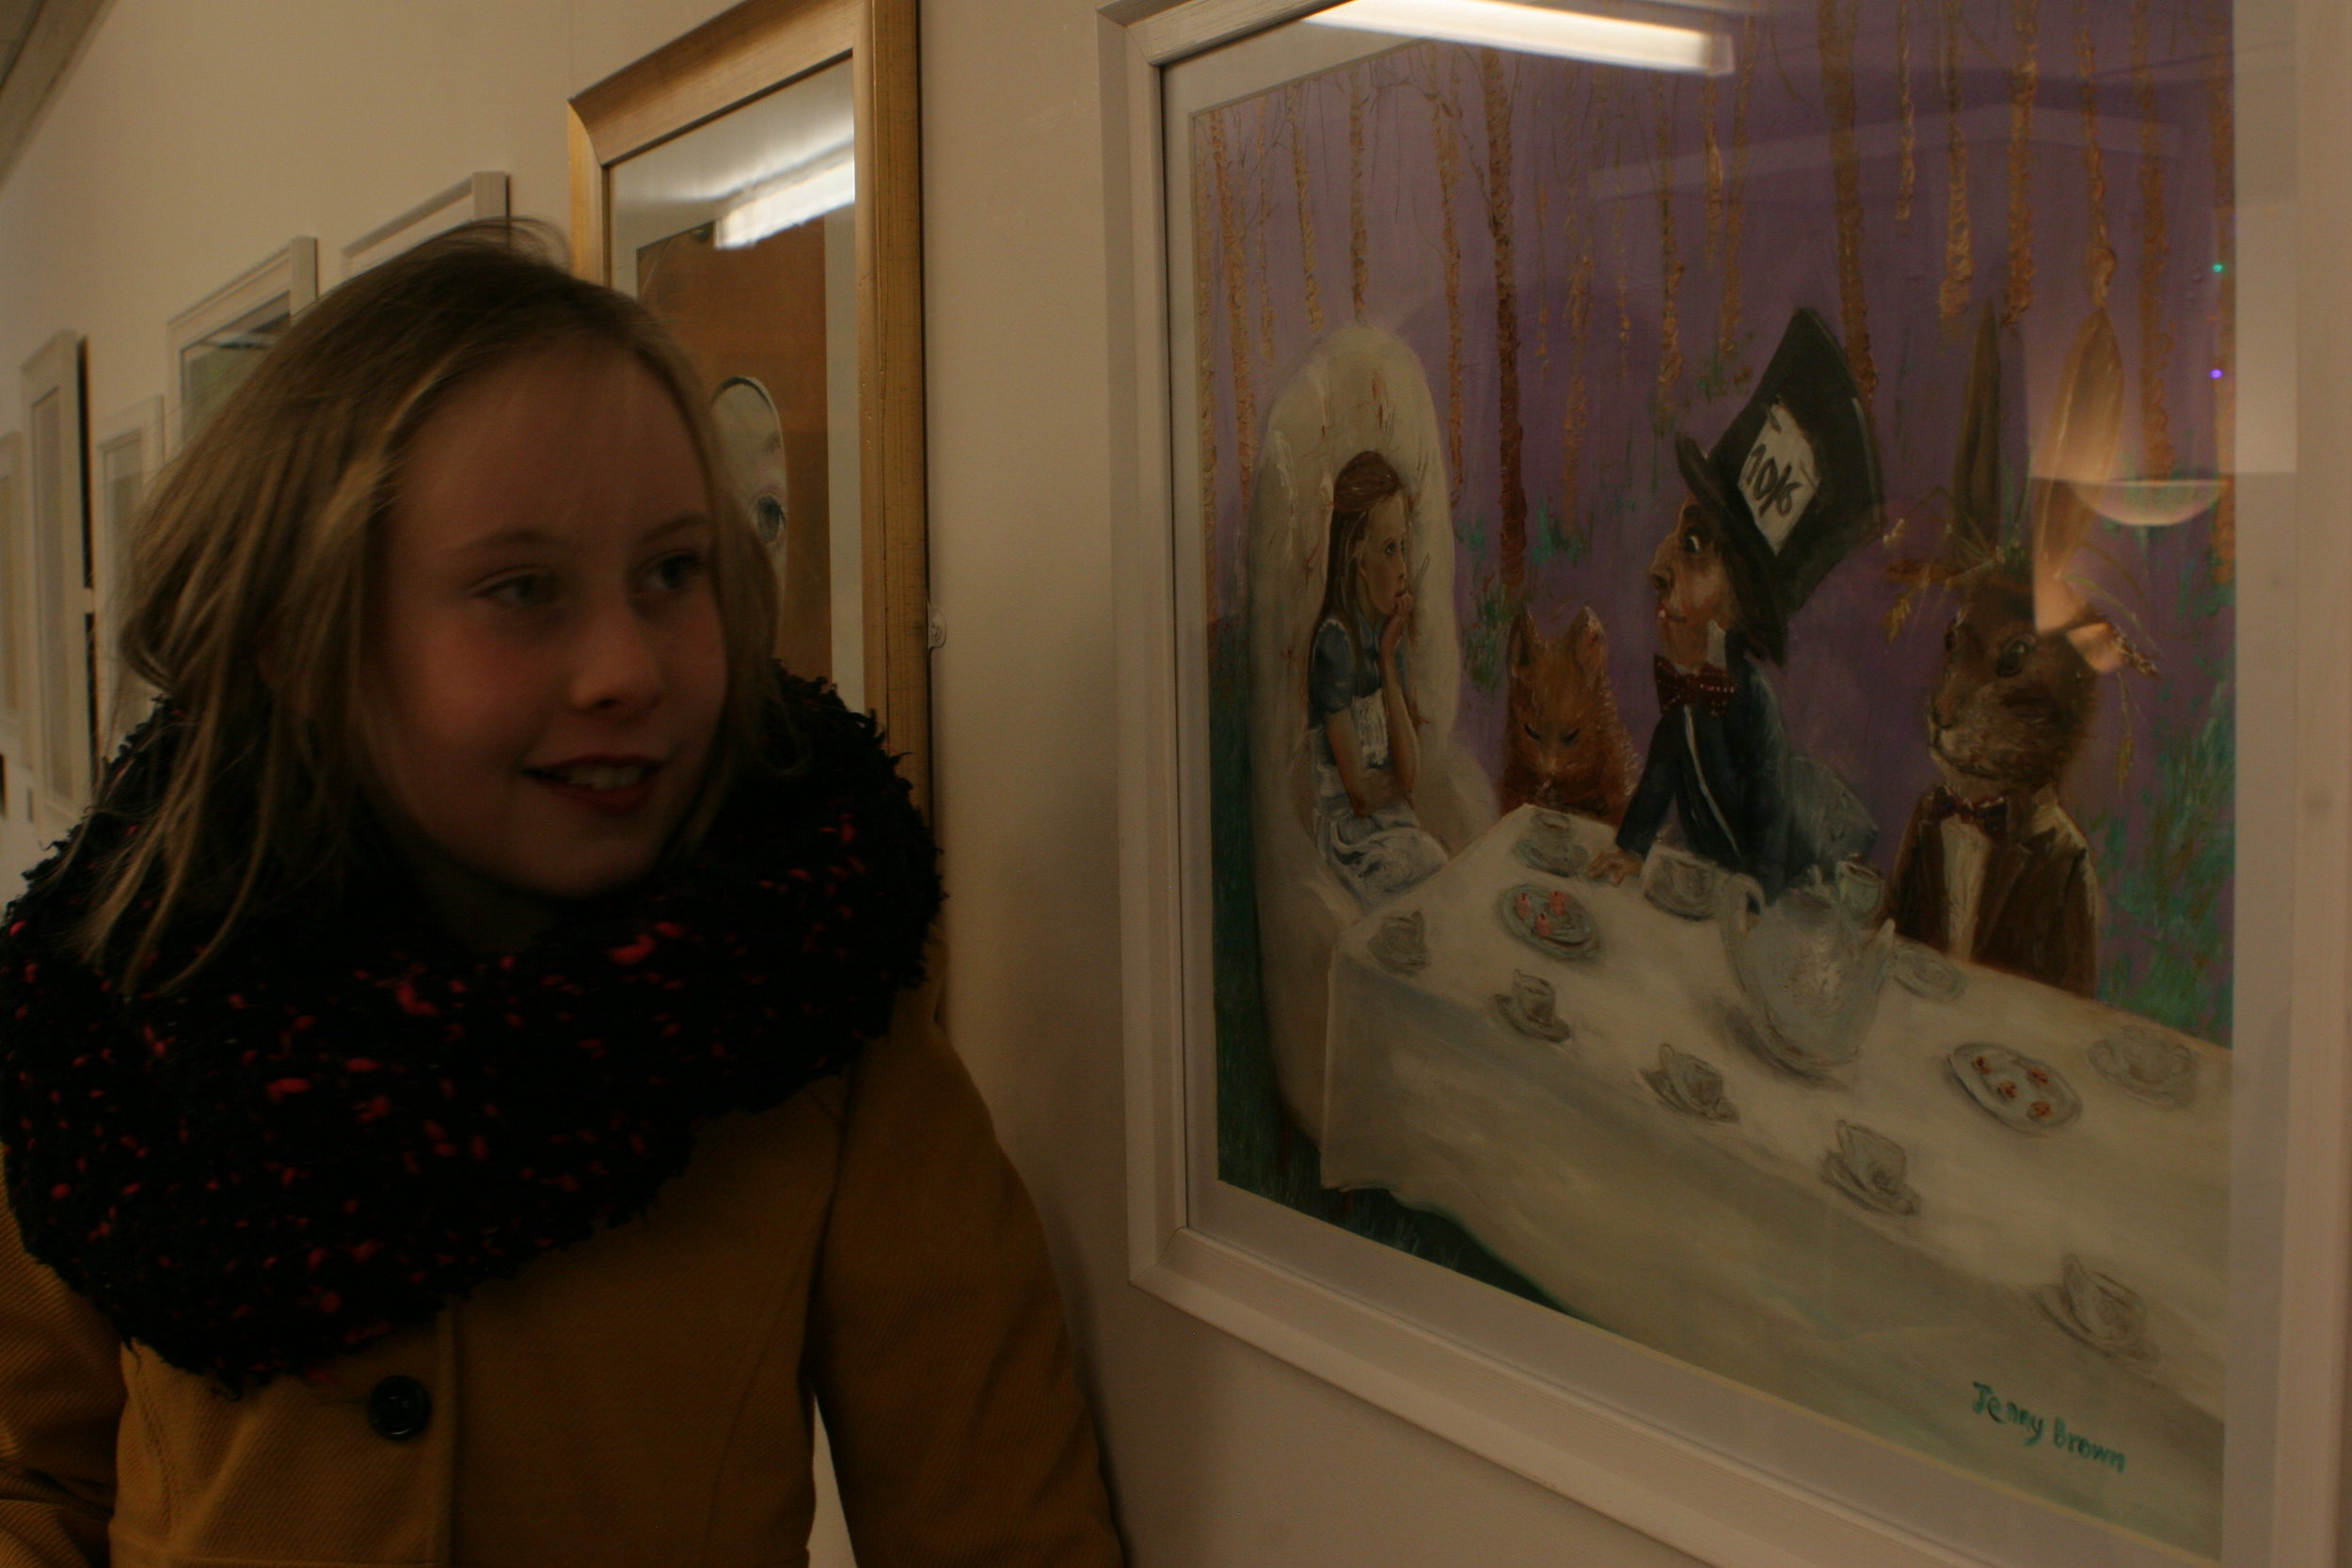 The model, Lily, enjoying the exhibition in North Ayrshire 2015.